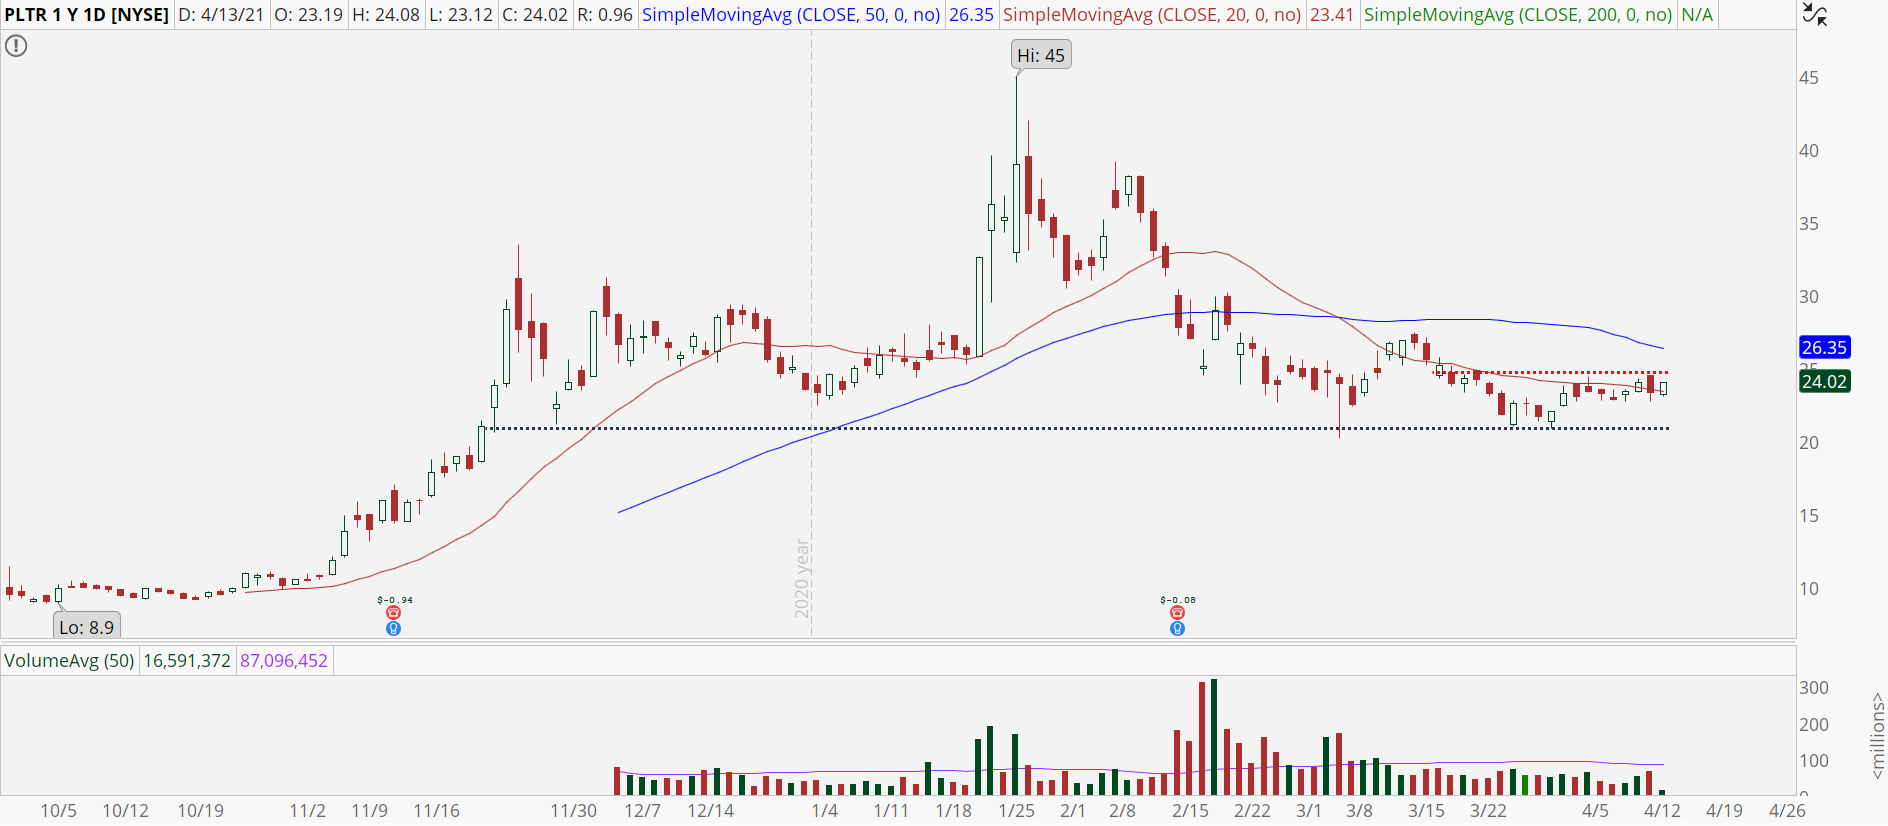 Palantir (PLTR) stock chart with key support at $21.